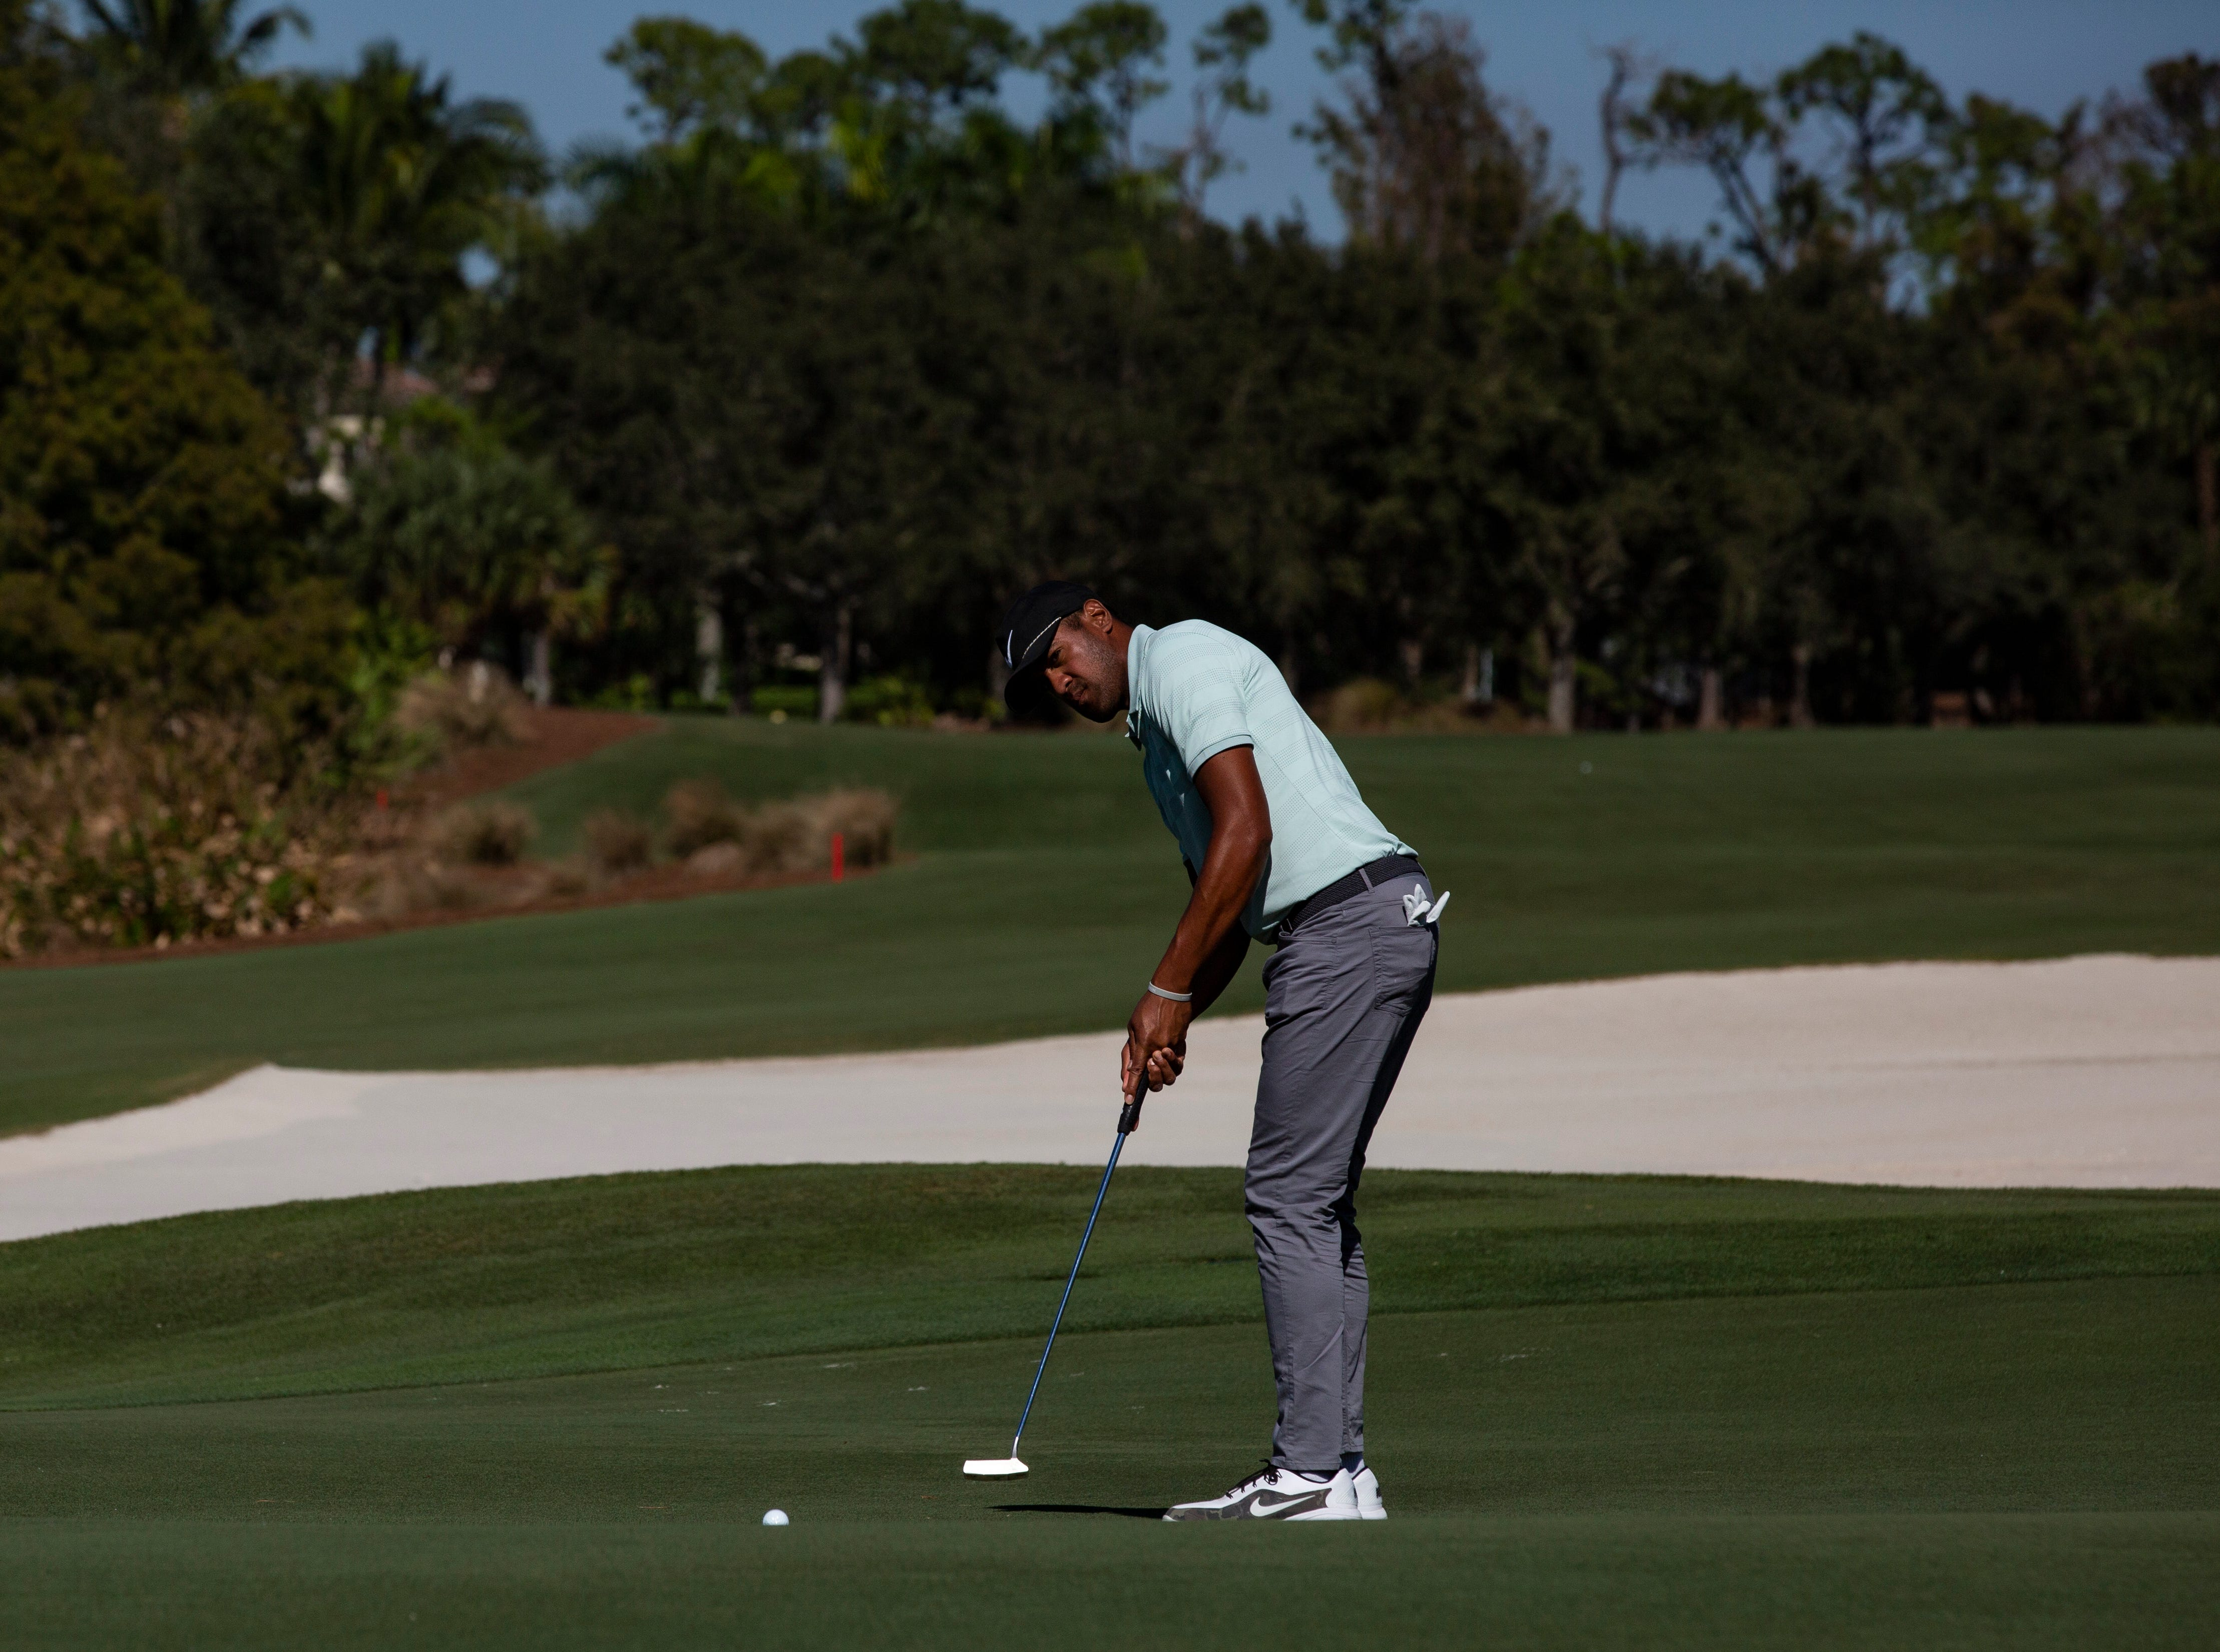 Tony Finau of Utah putts the ball during the 30th annual QBE Shootout Pro - Amateur round two, on Thursday, Dec. 6, 2018, at Tiburón Golf Club in Naples.